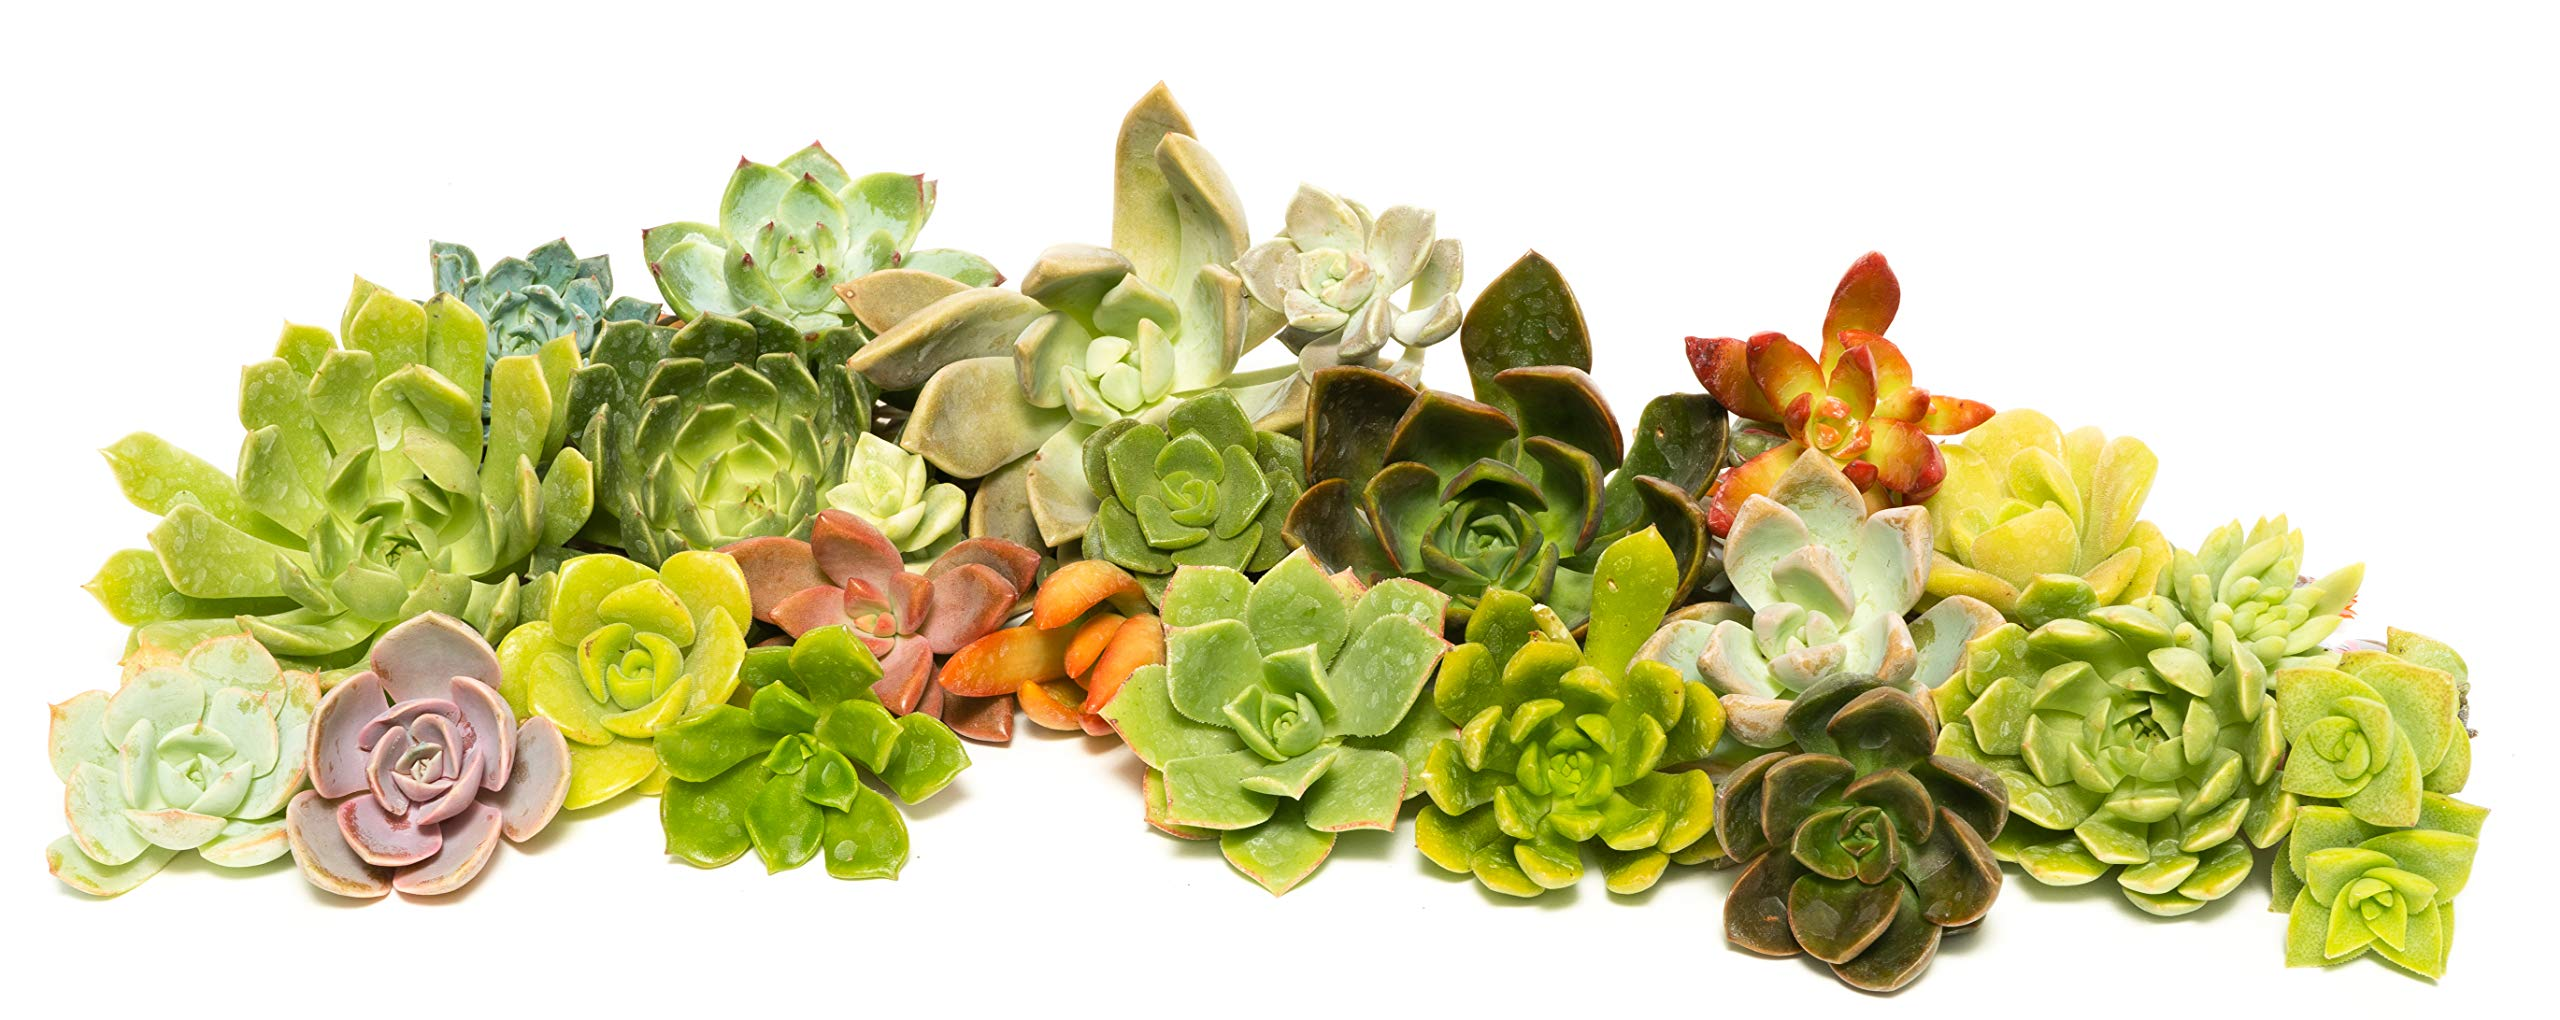 Succulent Rosette Cutting Pack- Brighten Up Your Garden with A Wide Variety of Healthy Rosette Succulent Plants Ready to Be Rooted by Jiimz (36 Pack)